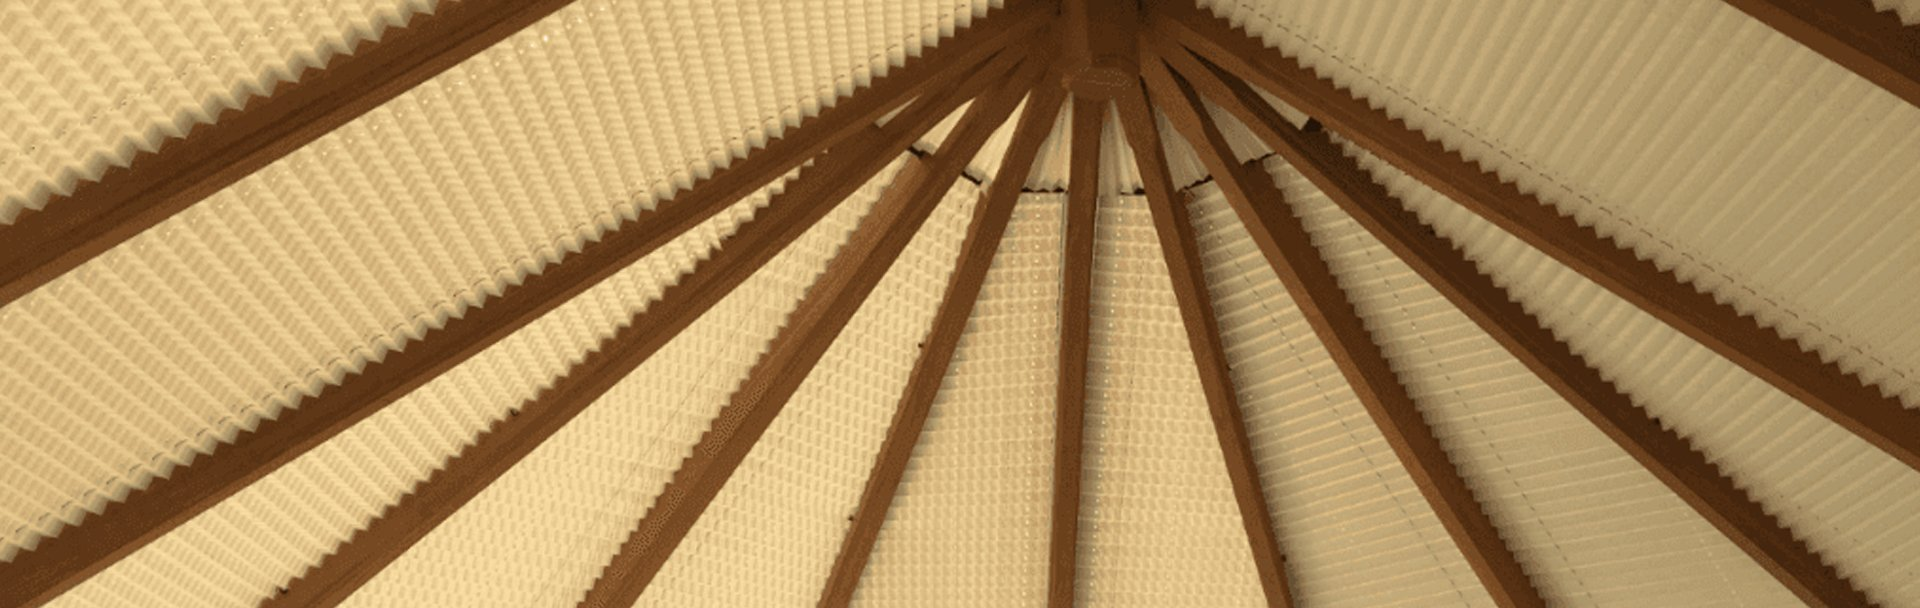 Fit Pleated Blinds